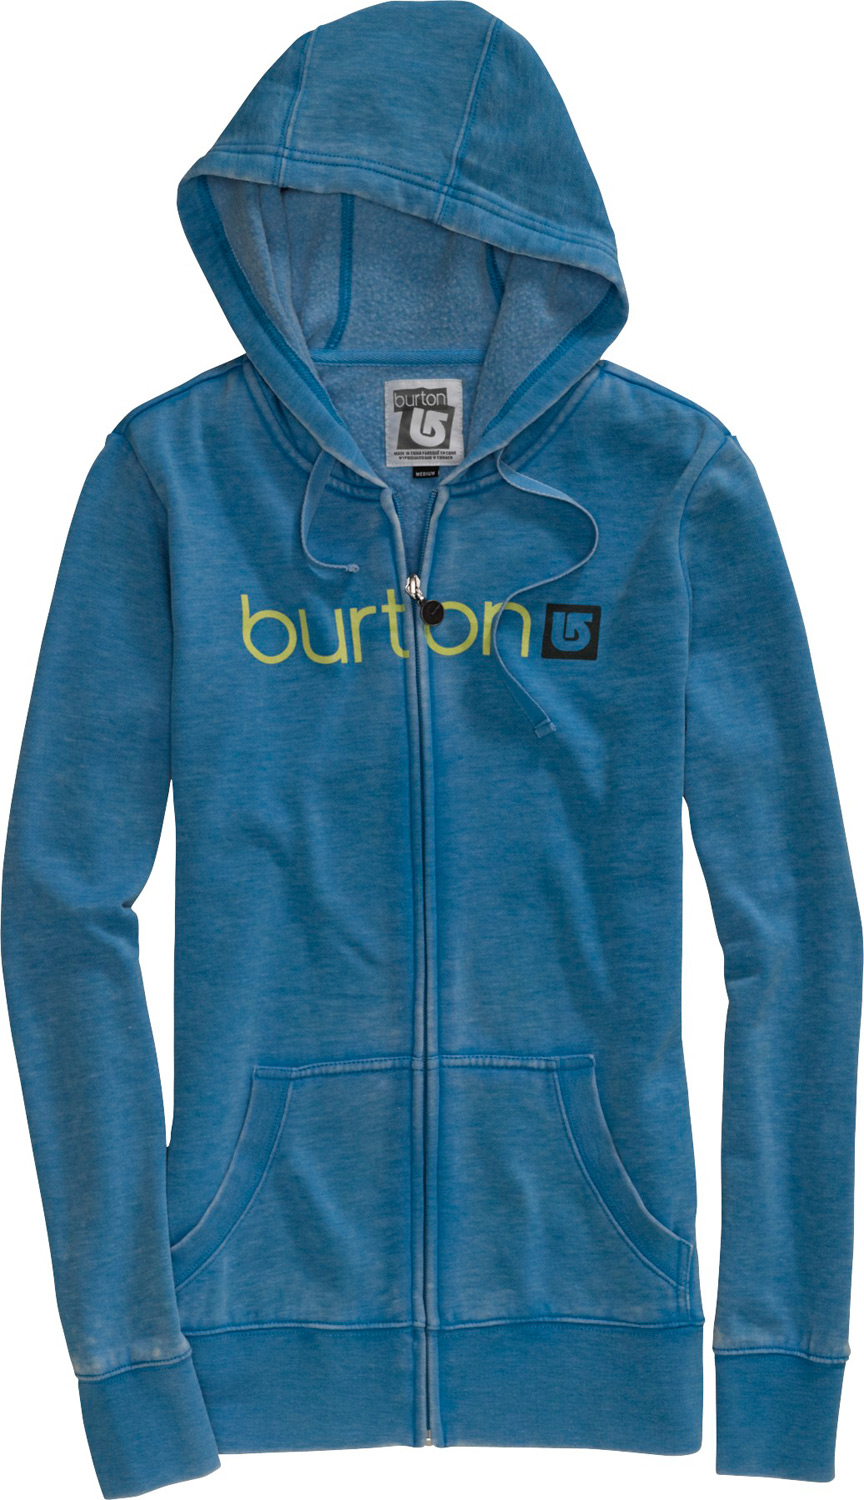 Snowboard Key Features of the Burton Her Logo Basic Hoodie: 60% Cotton/40% Polyester Burnout Fleece w/Burton Her Logo Word Mark Signature Fit XS-XL - $37.95